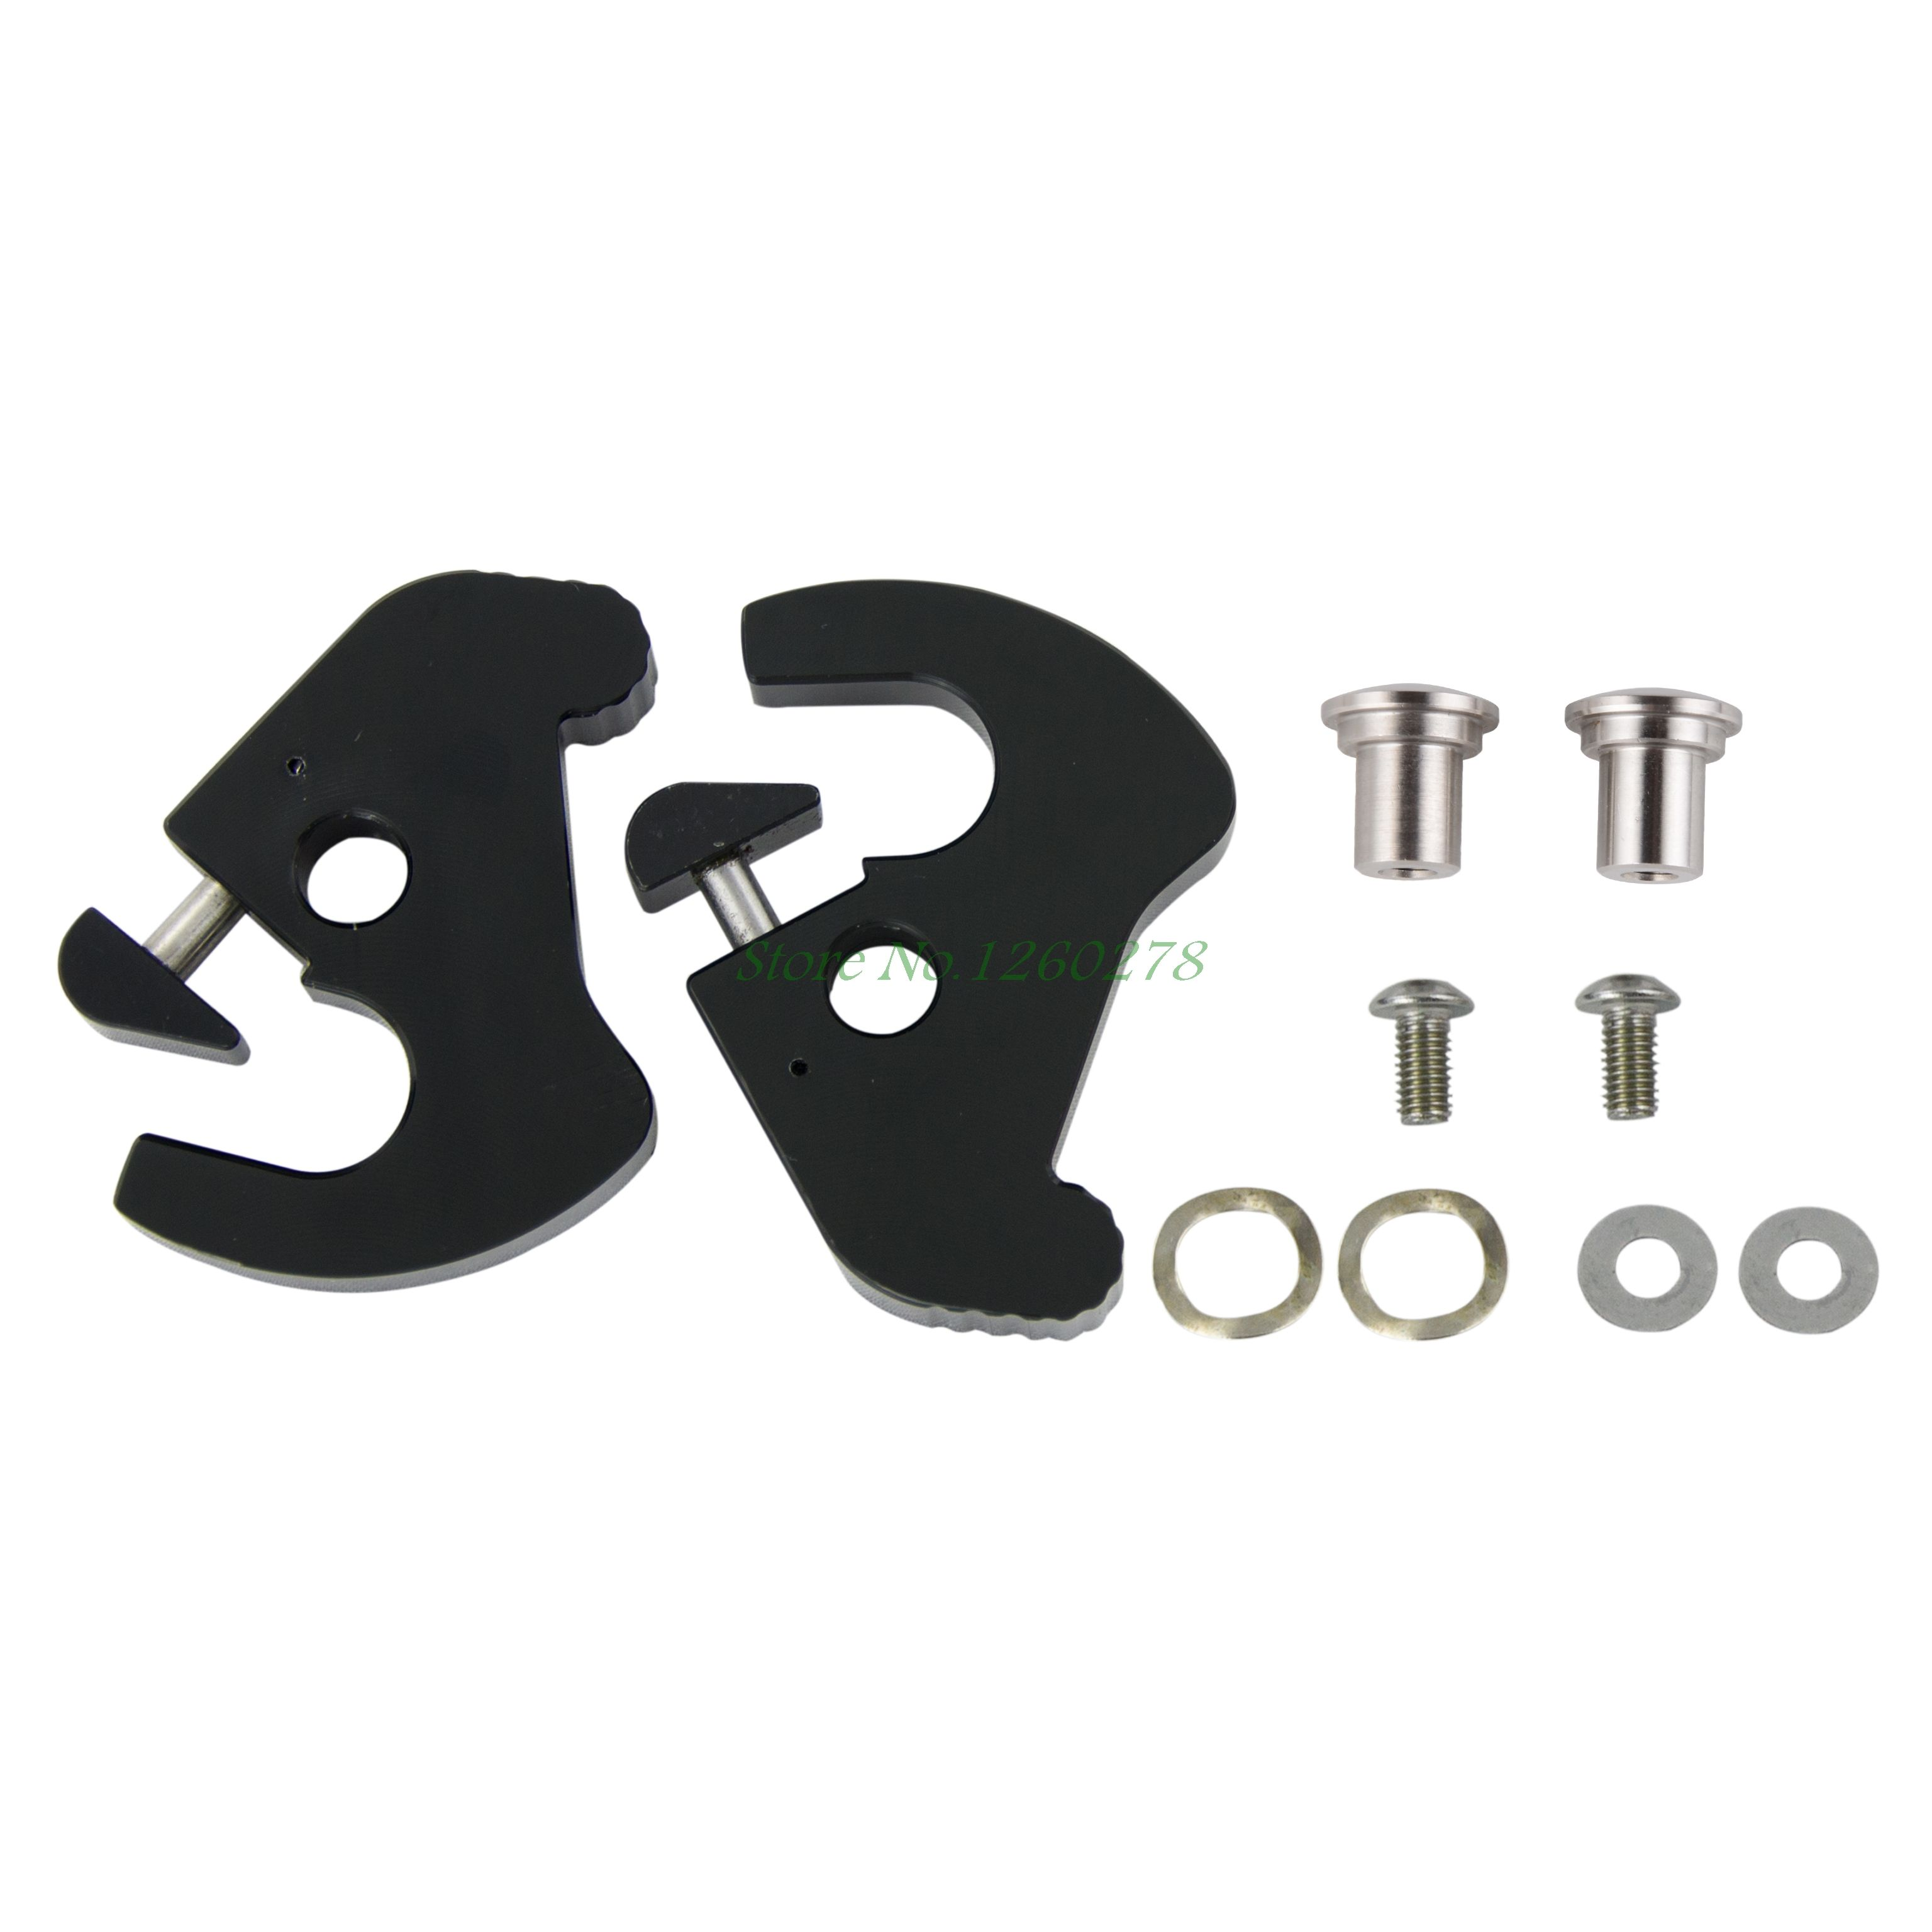 New Black H-D Detachables Latch Kits For Harley Touring Sissy Bar Luggage Racks Sportster 883 1200 Fat Boy Road King